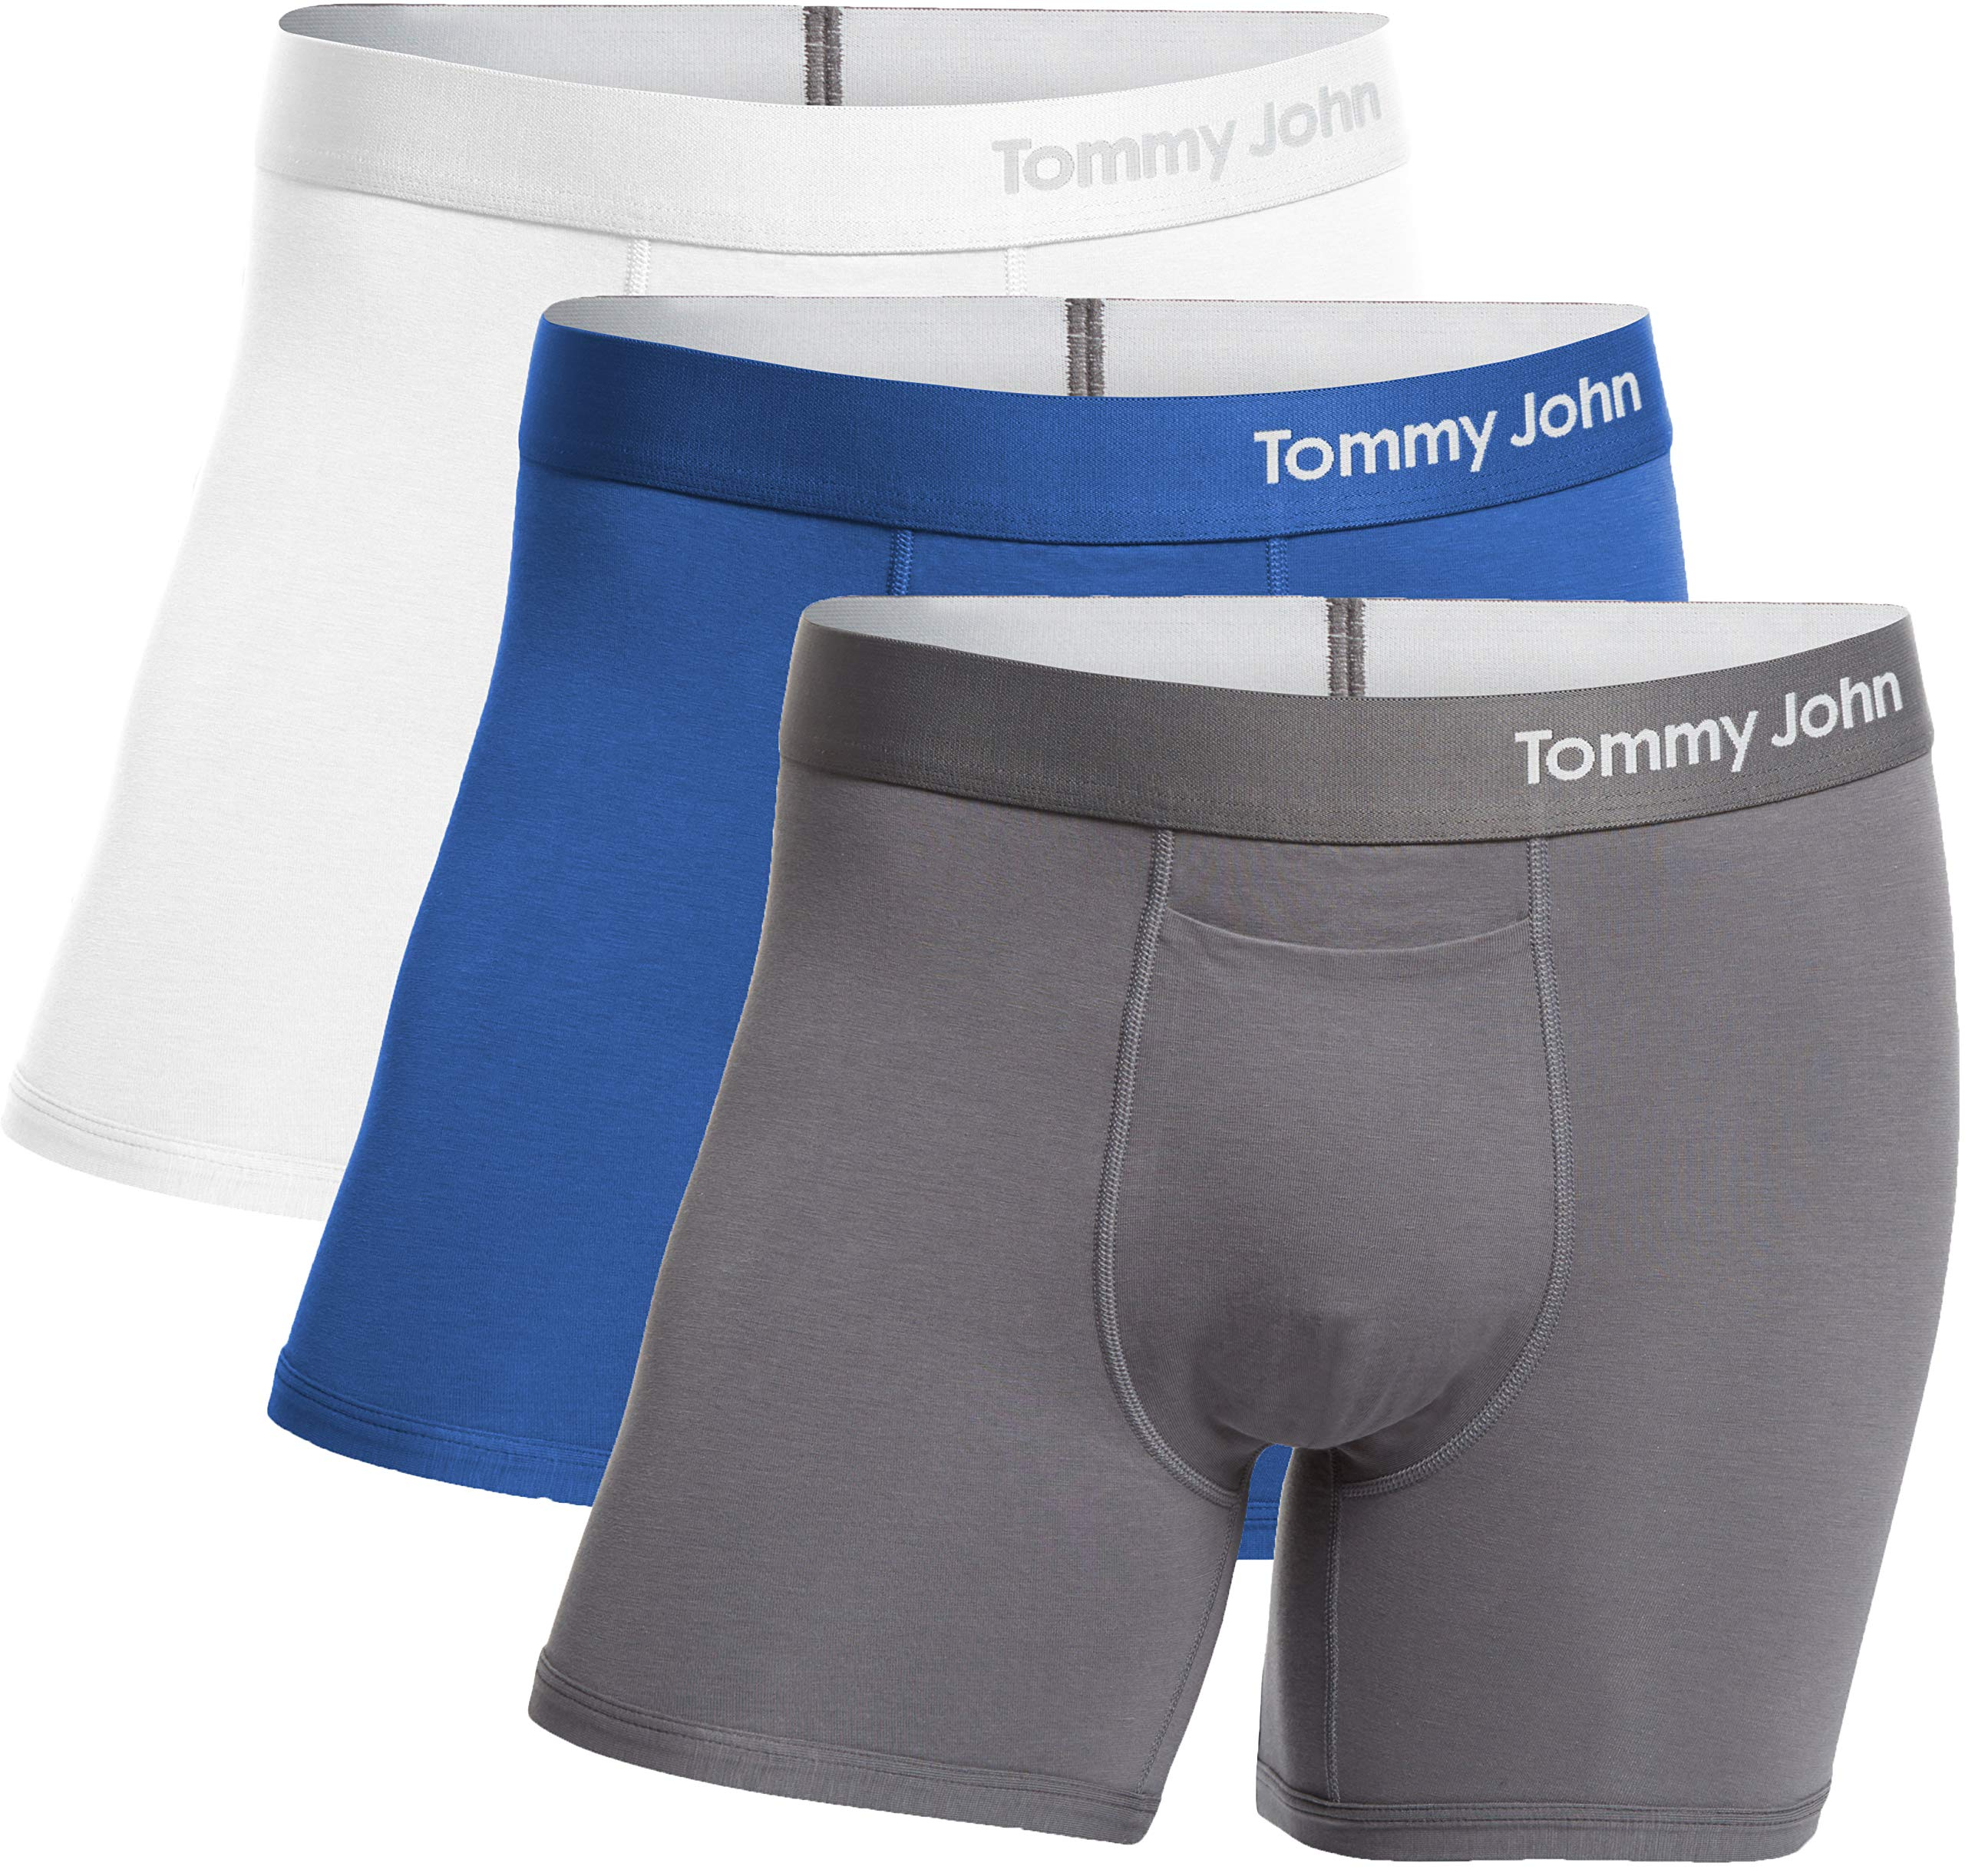 Tommy John Men's Cool Cotton Trunks - 3 Pack - Comfortable Breathable Soft Underwear for Men (White/TJ Blue/Iron Grey, Medium) by Tommy John